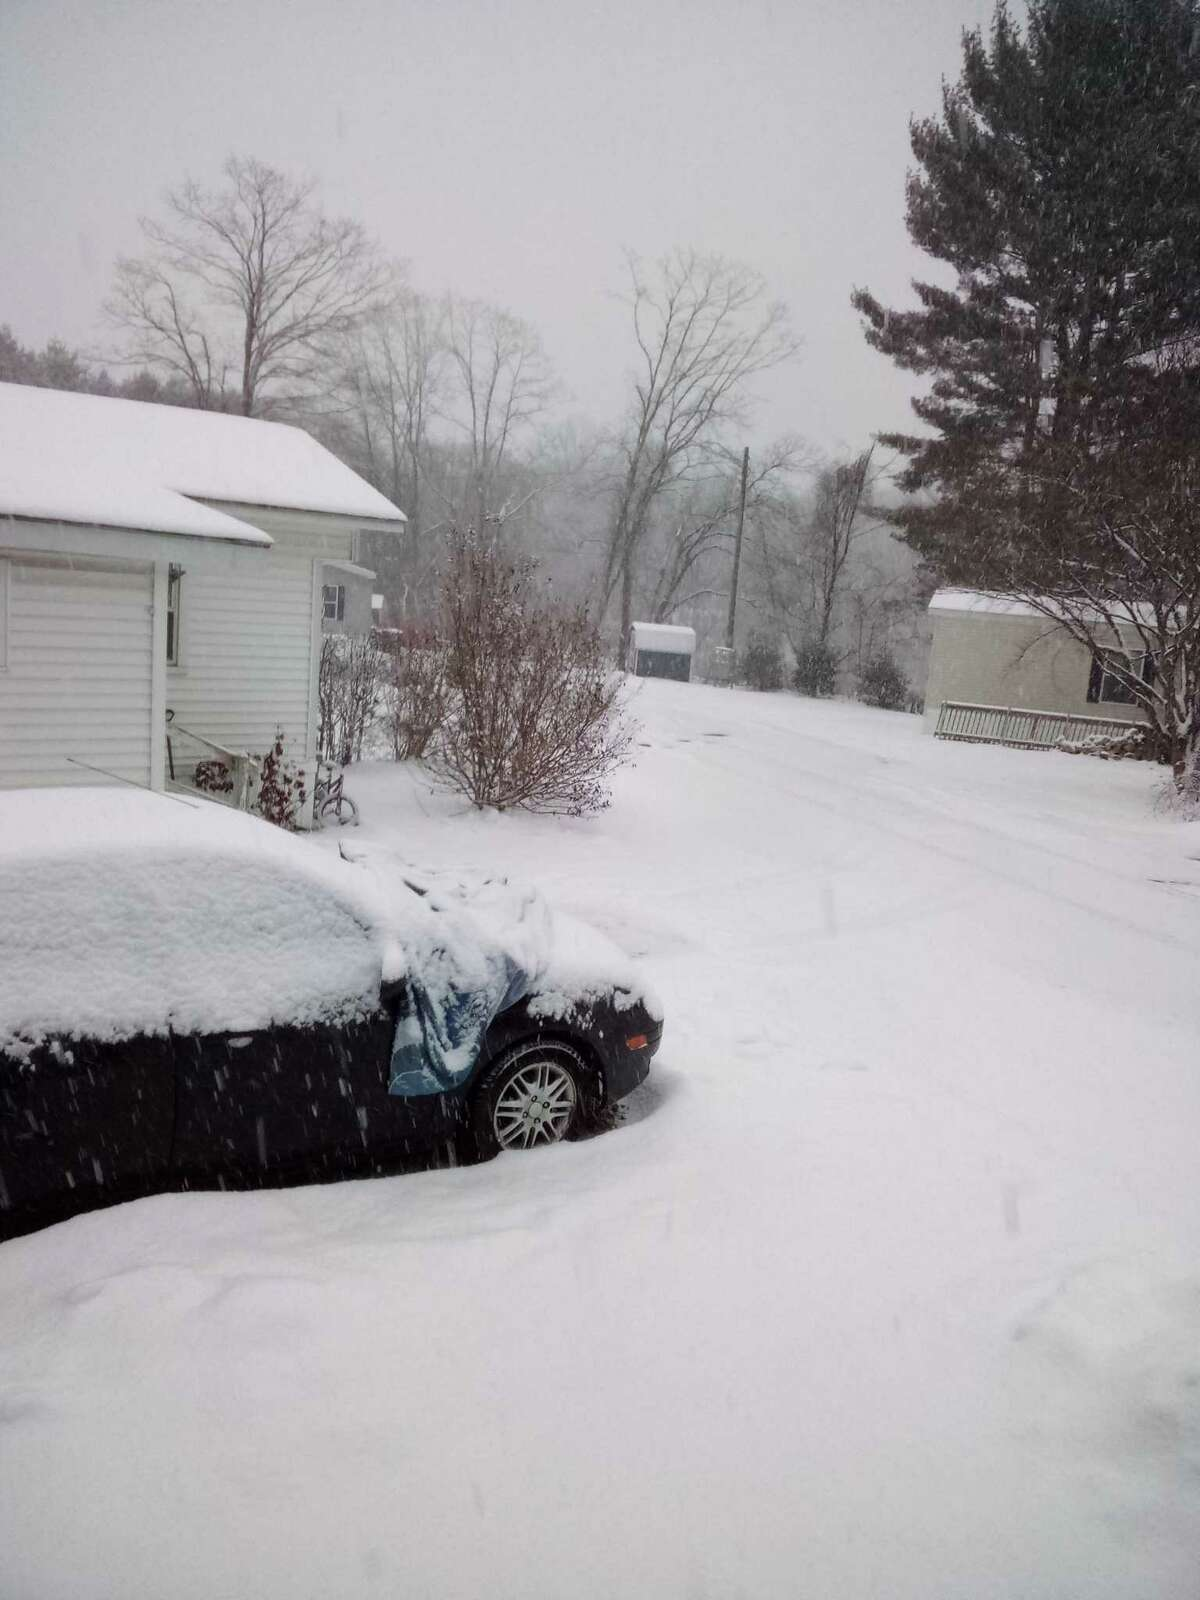 Snow in New Milford from a prior snowstorm.